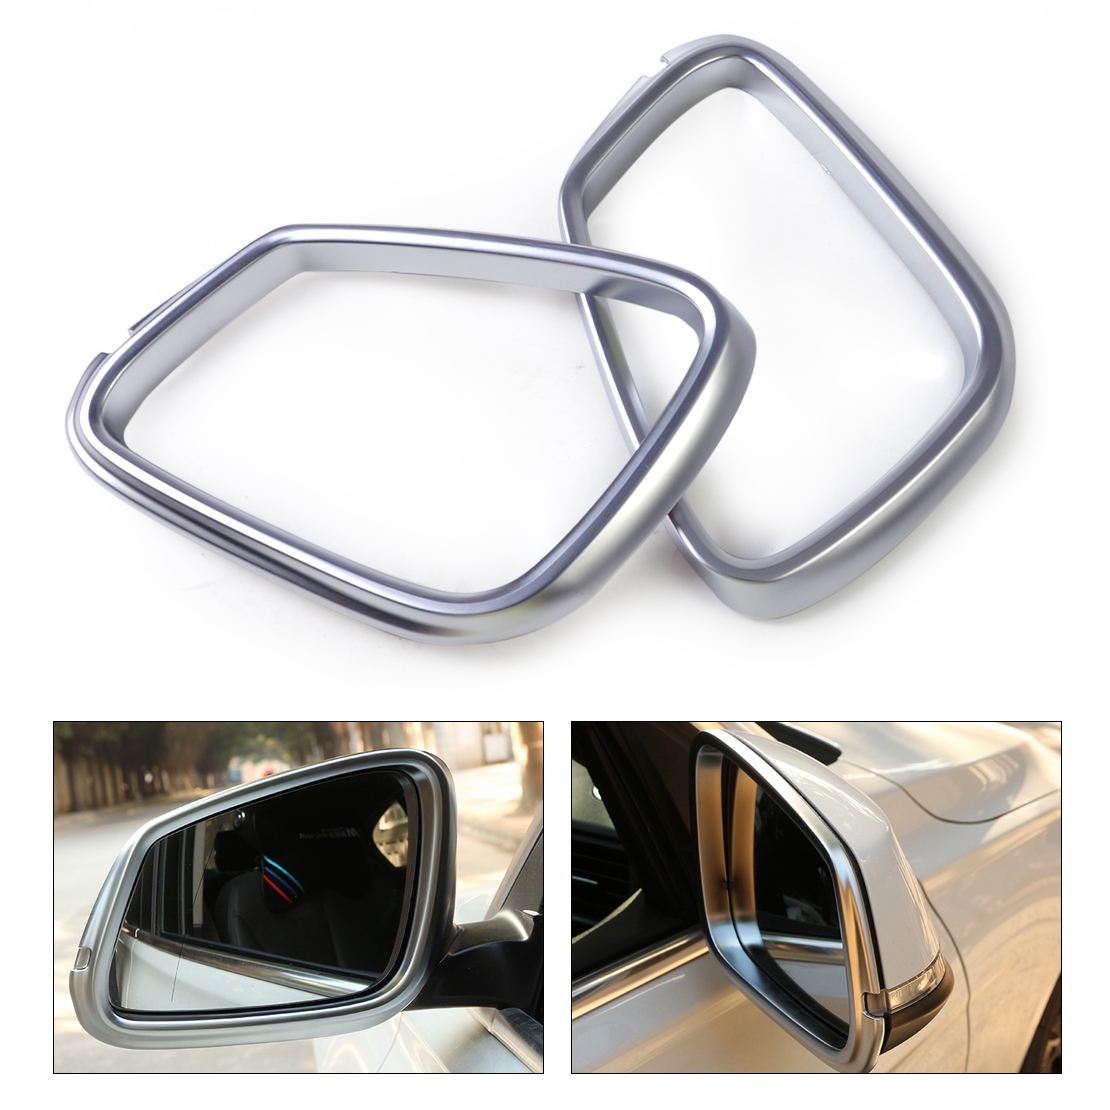 DWCX 2Pcs Chrome Left Right Side Door Rearview Reflector Mirror Protector Frame Cover Trim for BMW 2 Series 218i 2014-2016 2pcs left